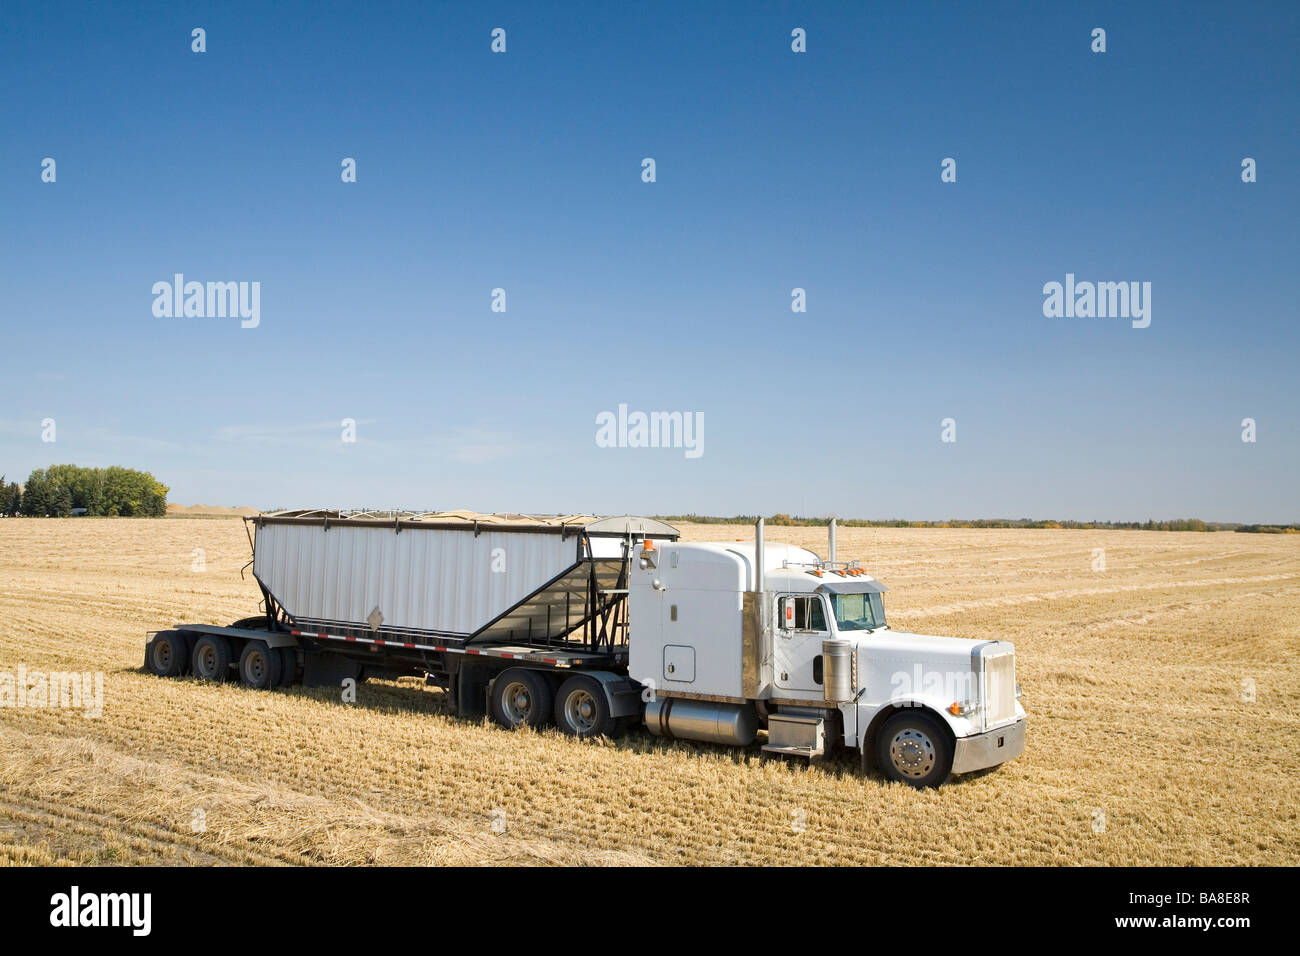 Truck carrying grains in field - Stock Image